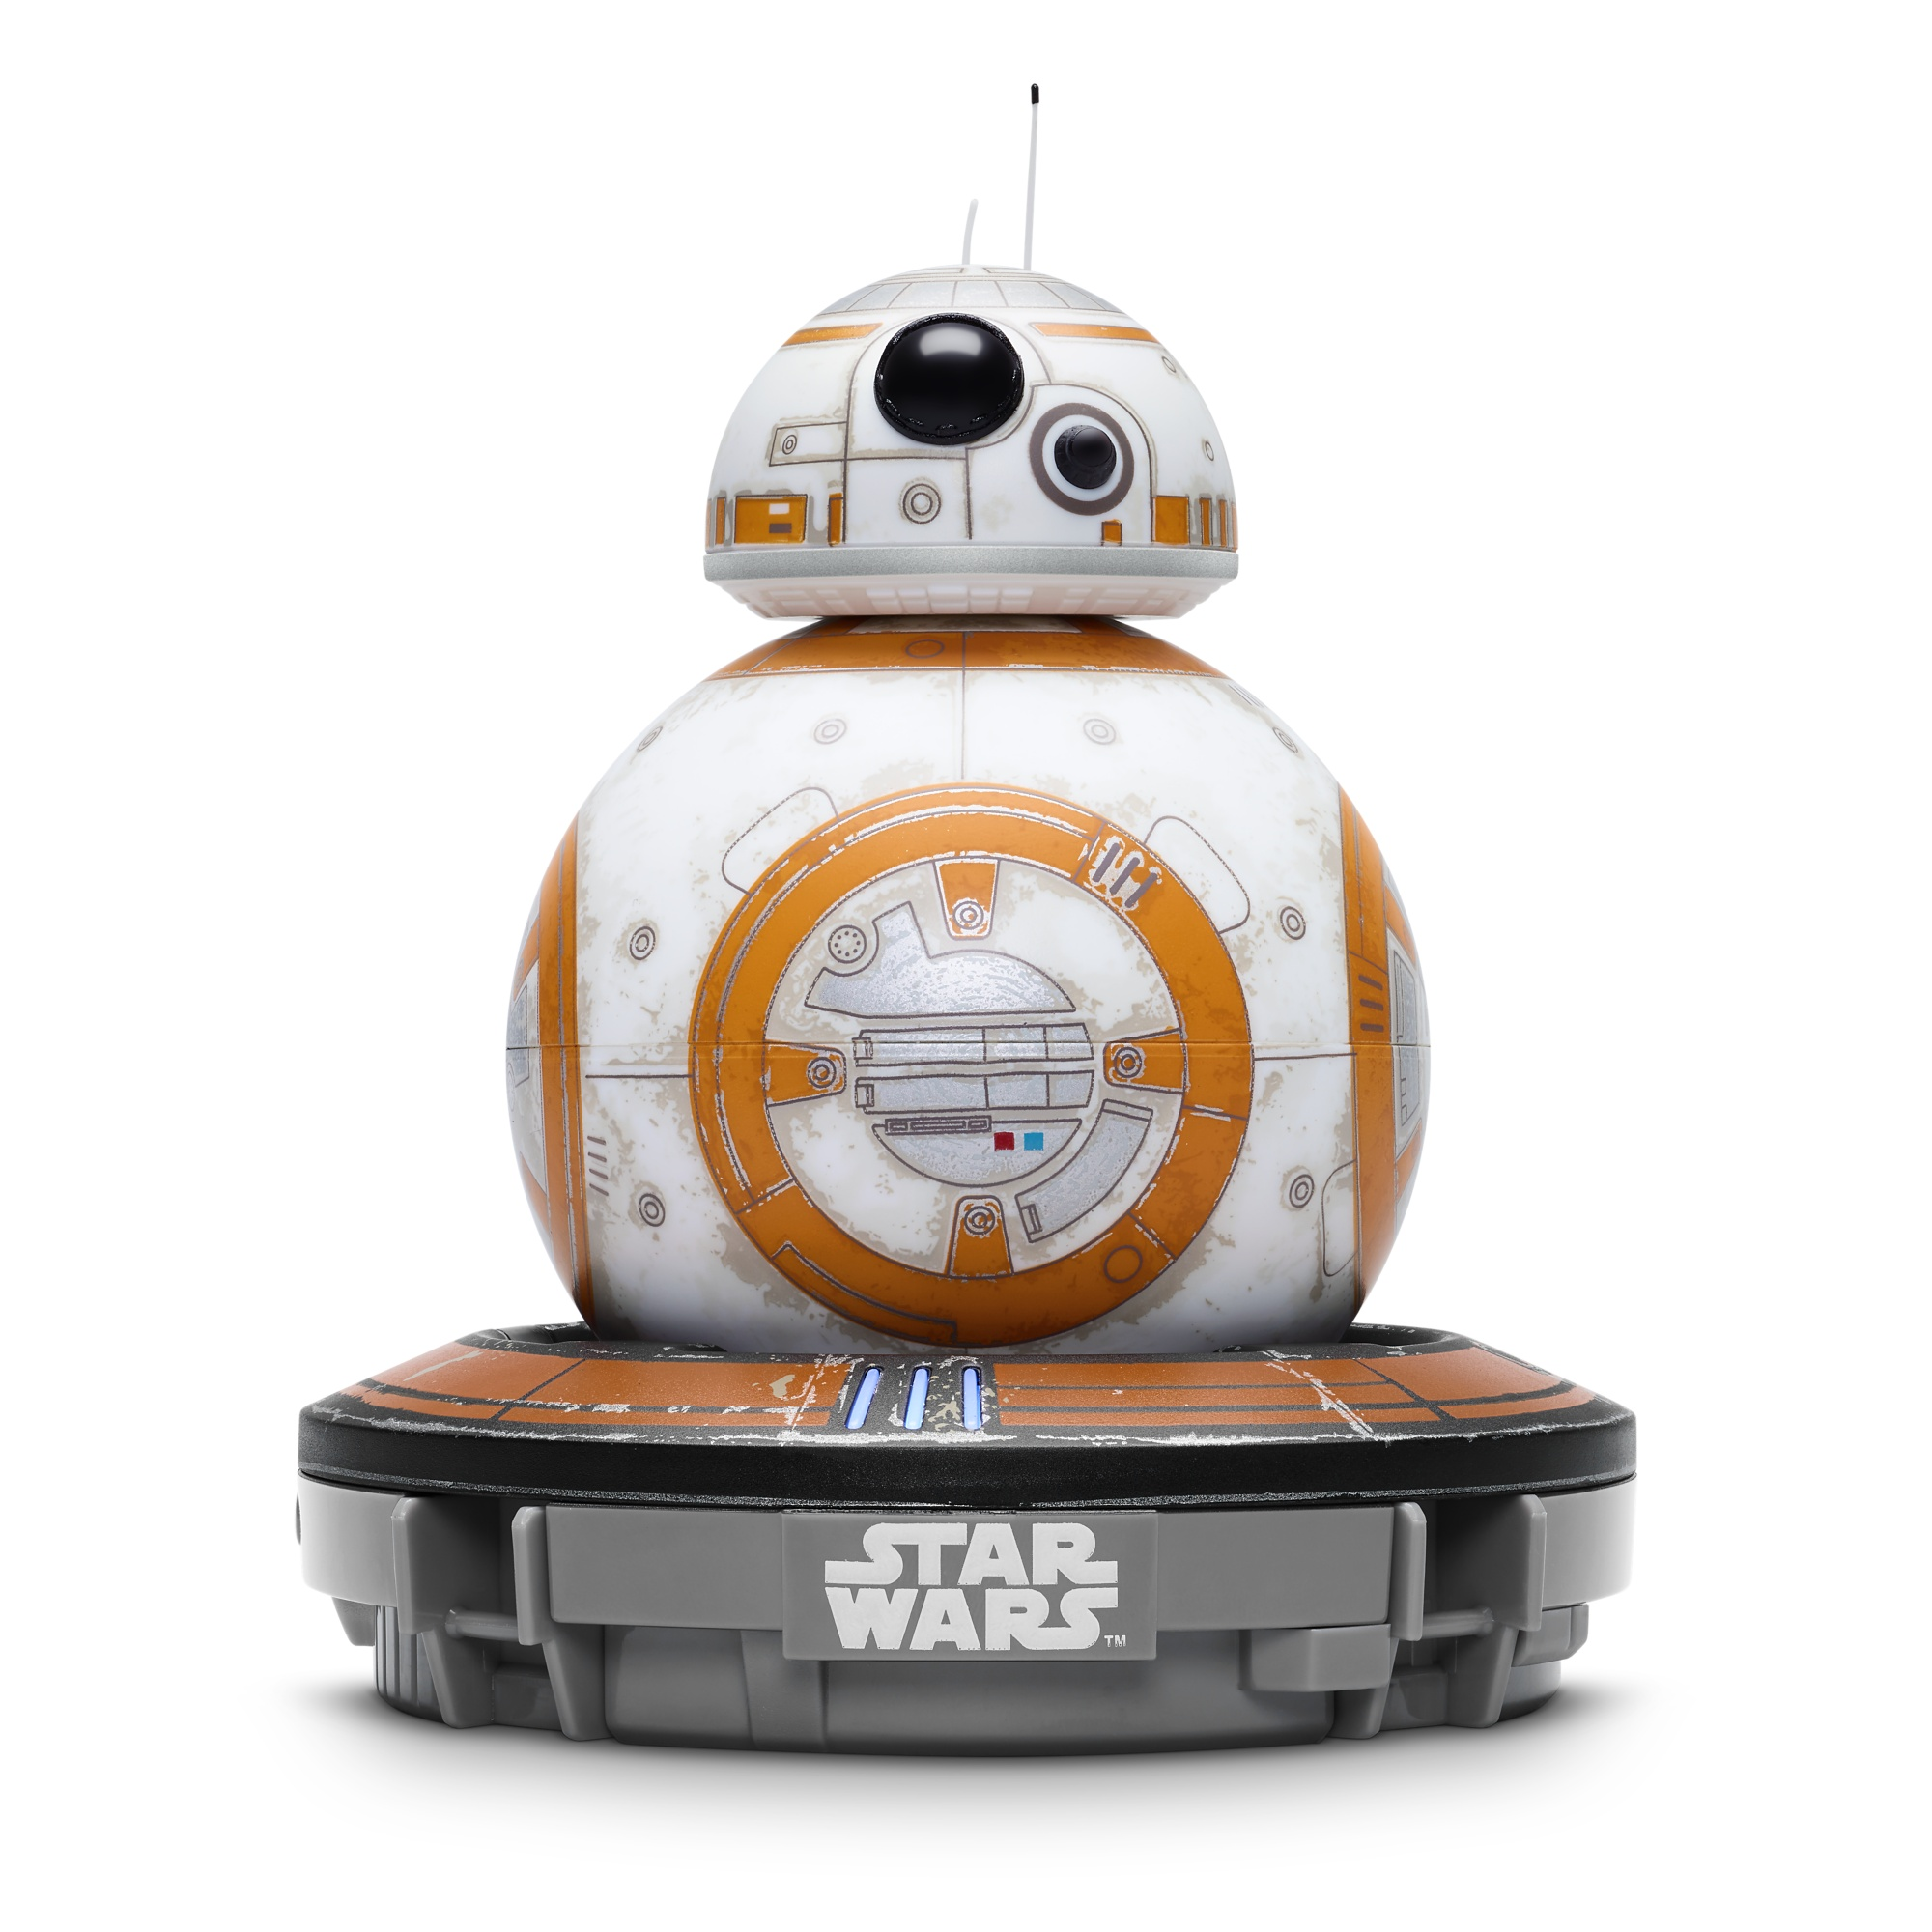 battle-worn-bb-8-droid-with-force-band-by-sphero-droid